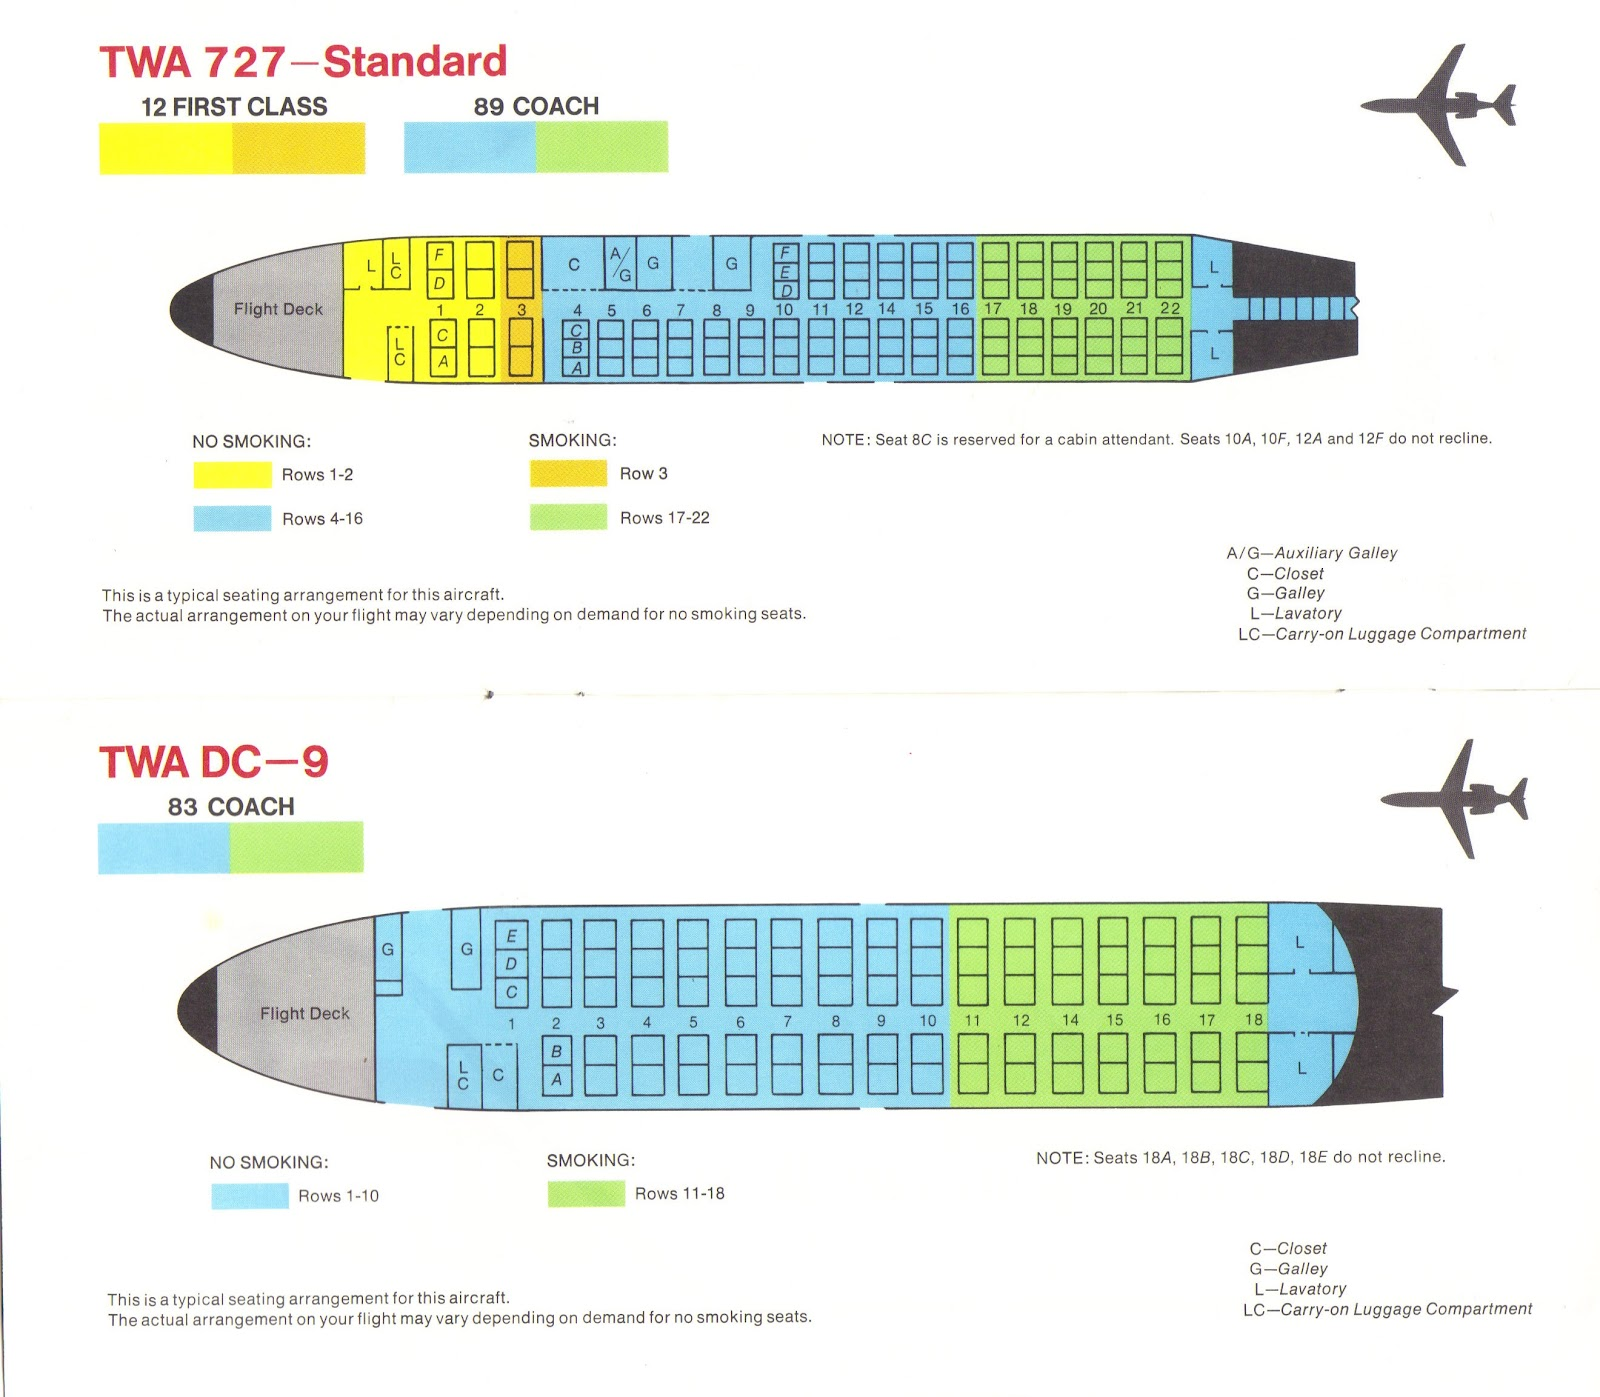 Vintage Airline Seat Map: USAir DC-9-30 - Frequently Flying